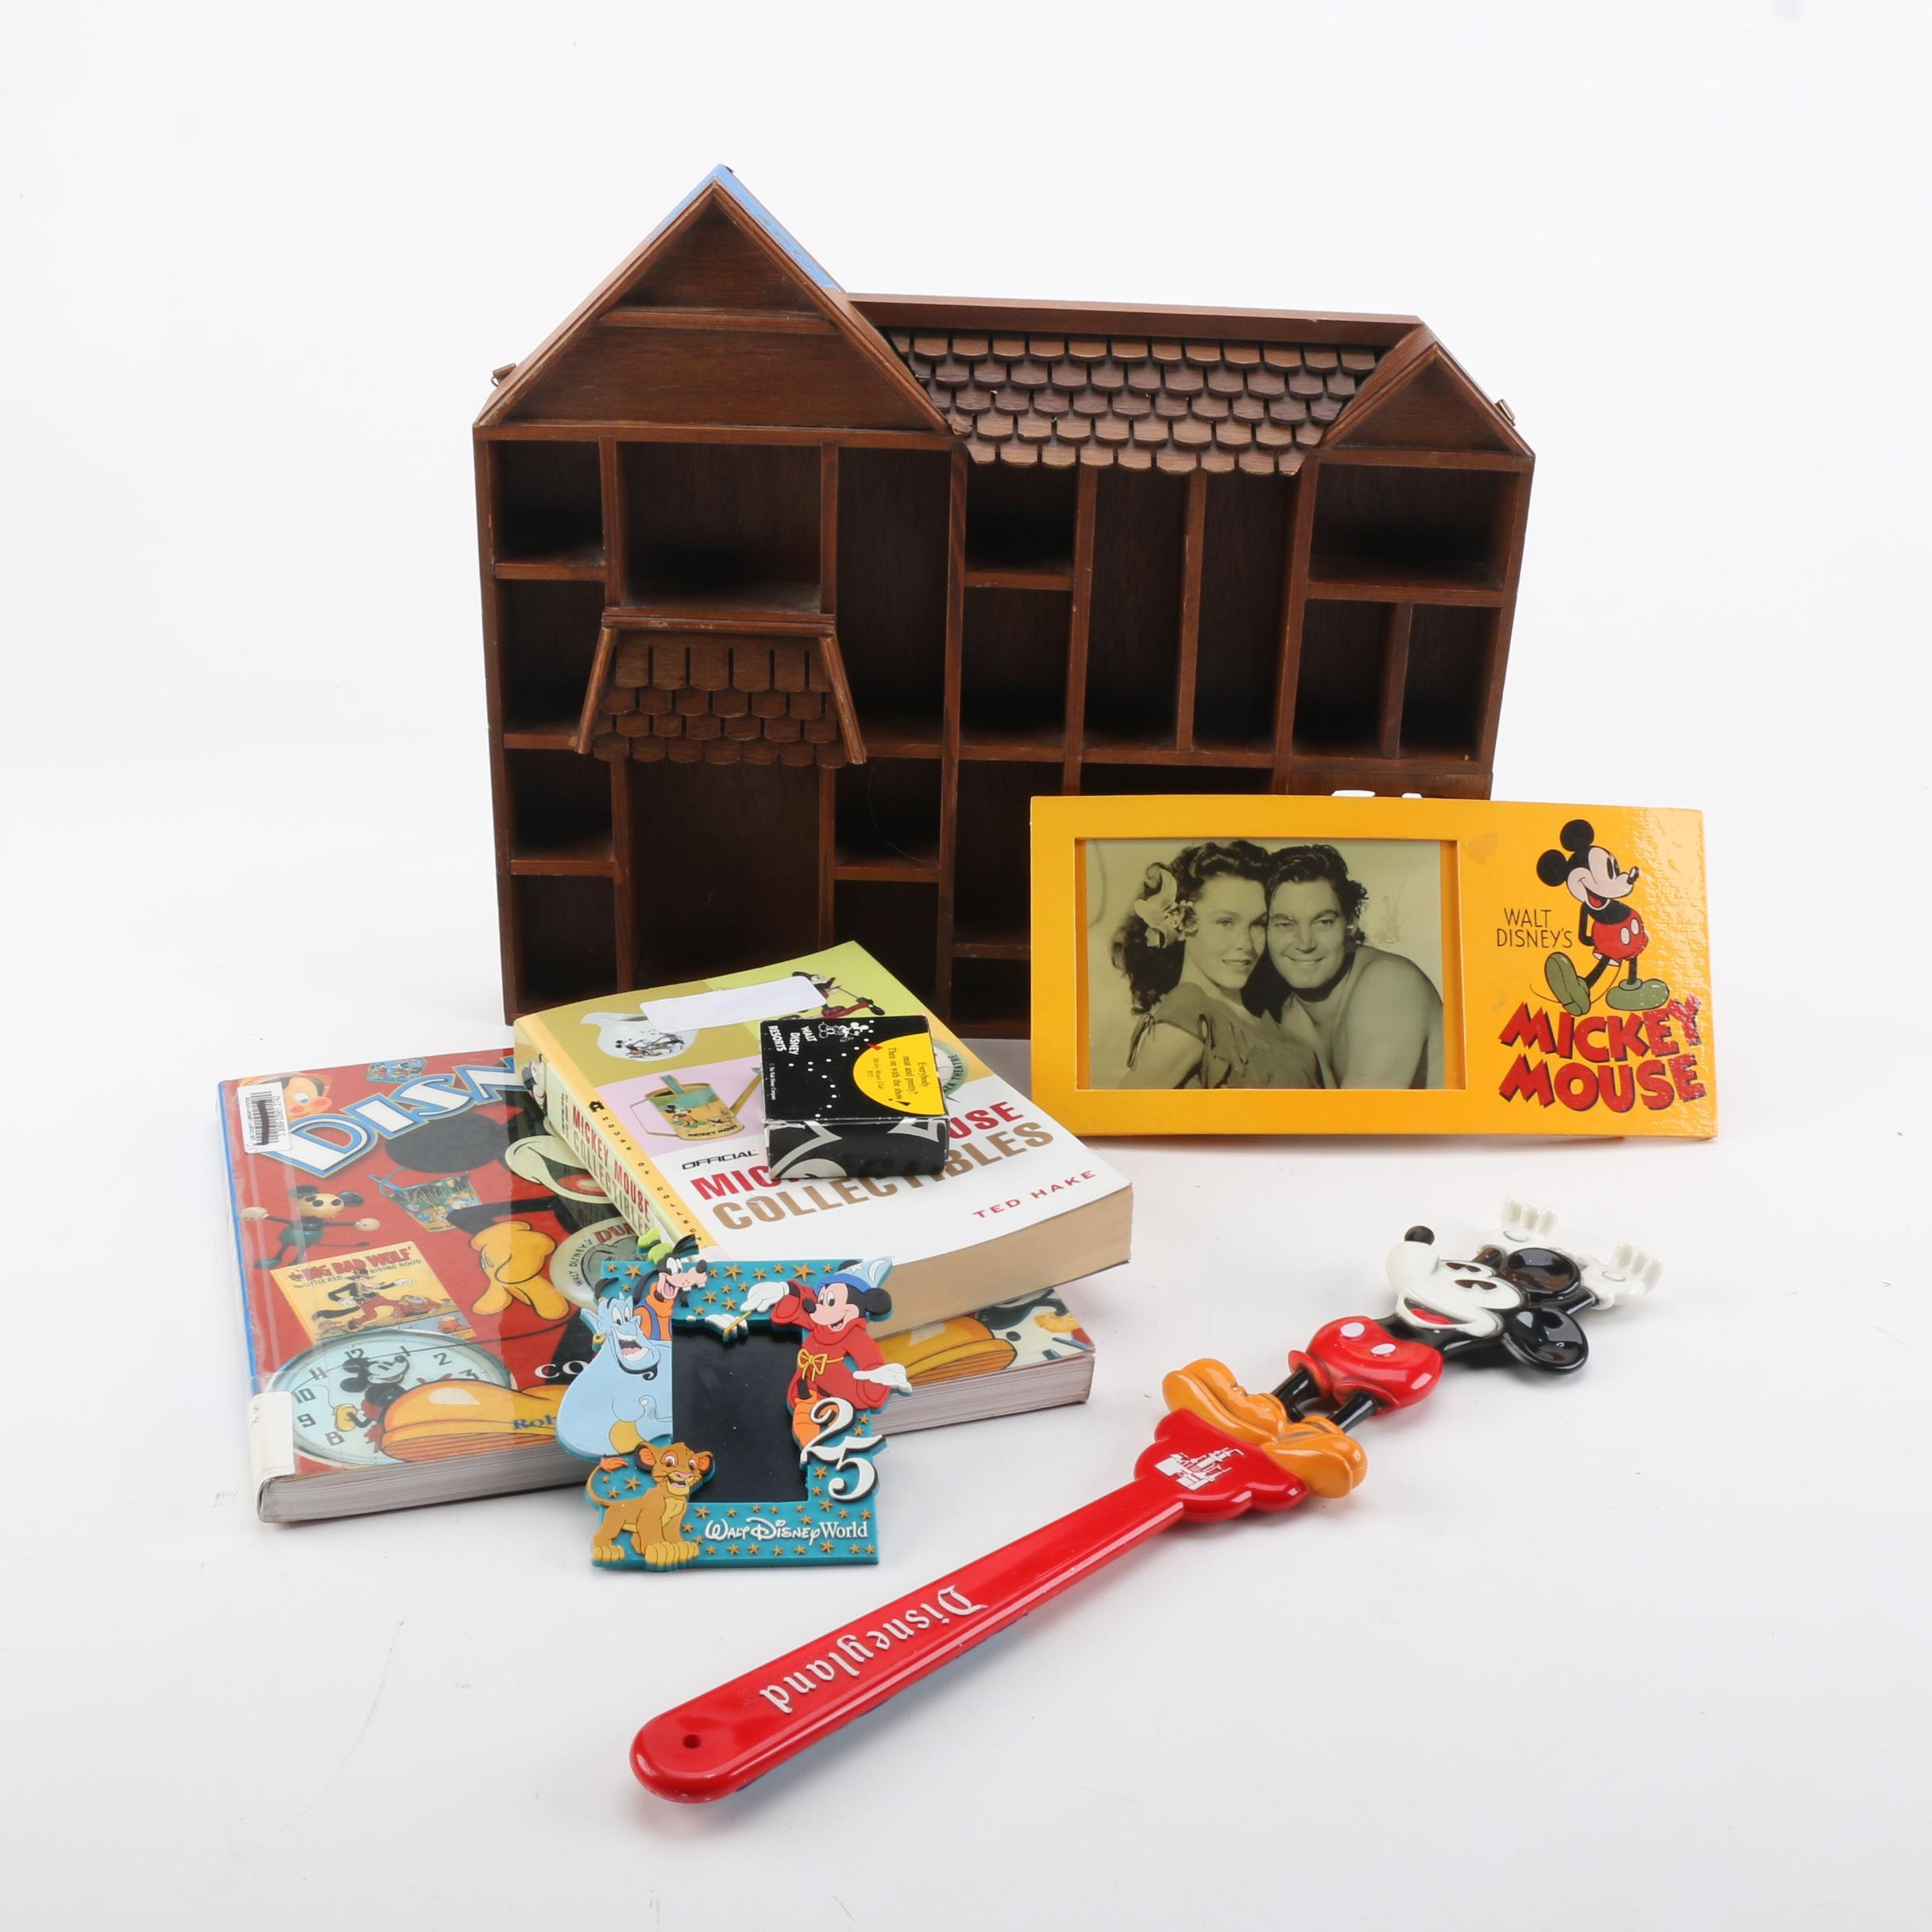 Disney Collectibles And House Shaped Display Shelf